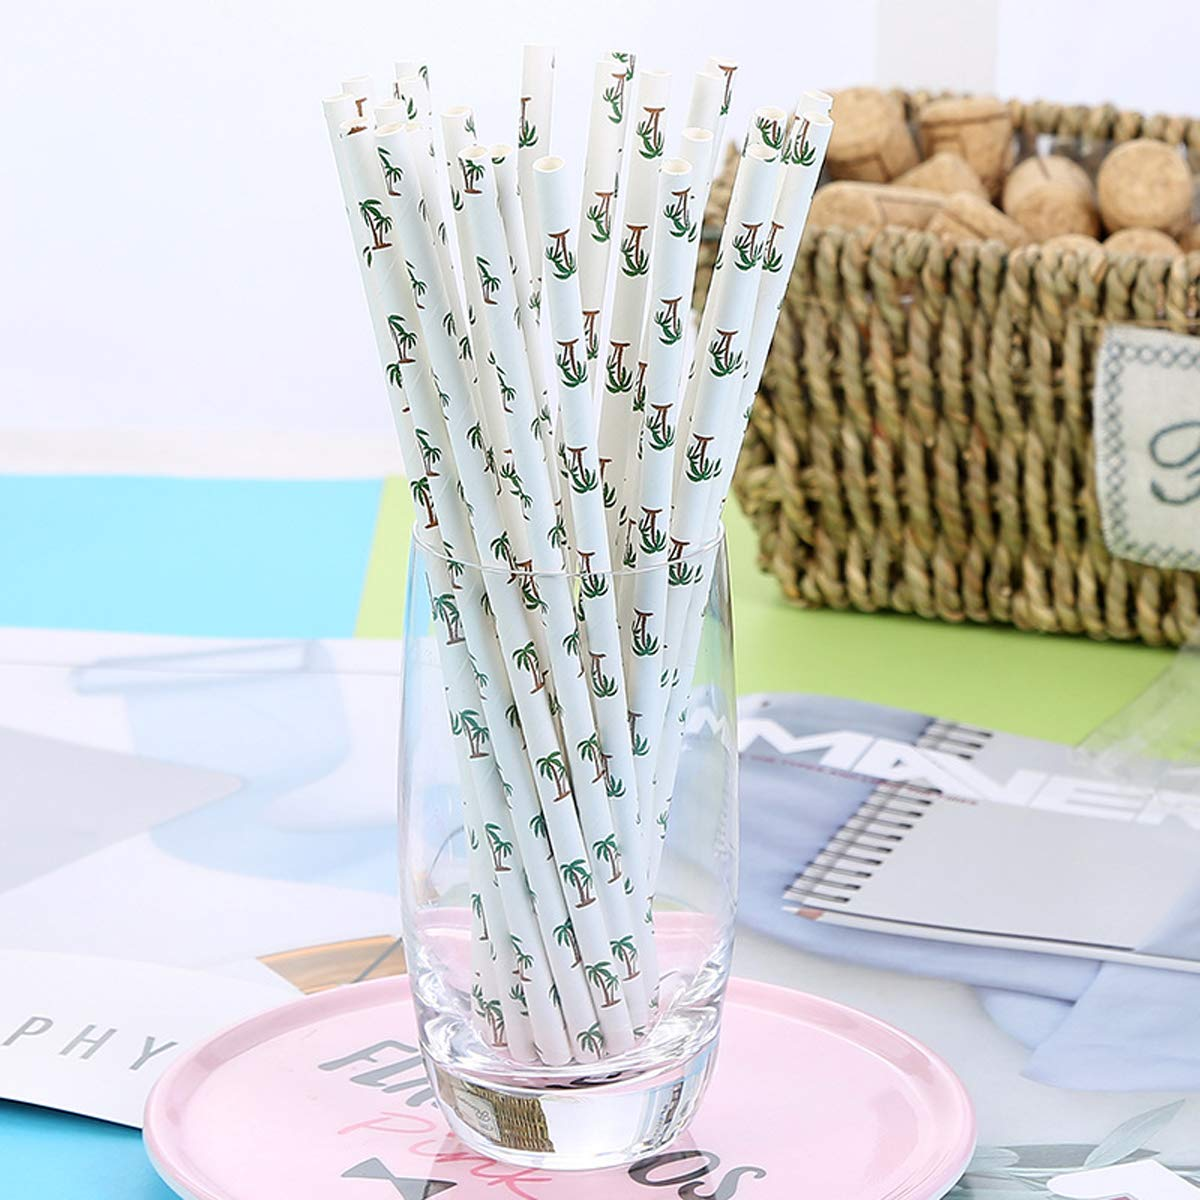 100-Pack Biodegradable Paper Drinking Straws for Graduation Party Supplies Bridal/Baby Shower Wedding Decorations, Bulk Paper Straws for Juices, Shakes, Smoothies, Coconut Palm Theme